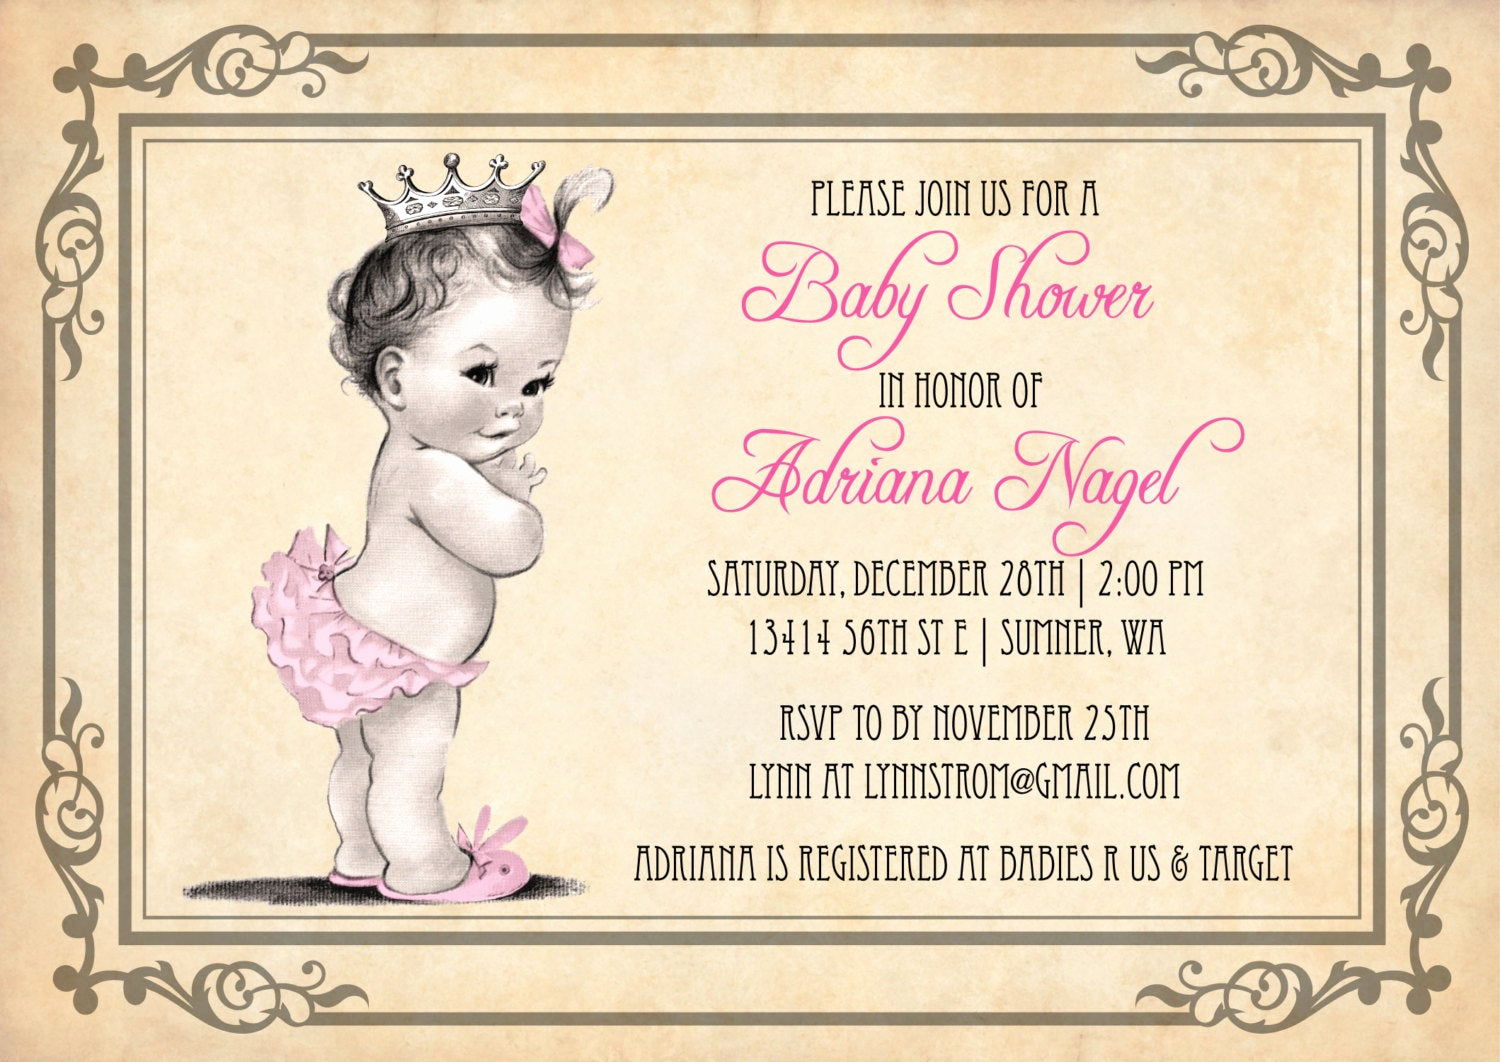 Baby Shower Invitation for Girl Unique Princess Baby Shower Invitation Girl Vintage Princess Baby